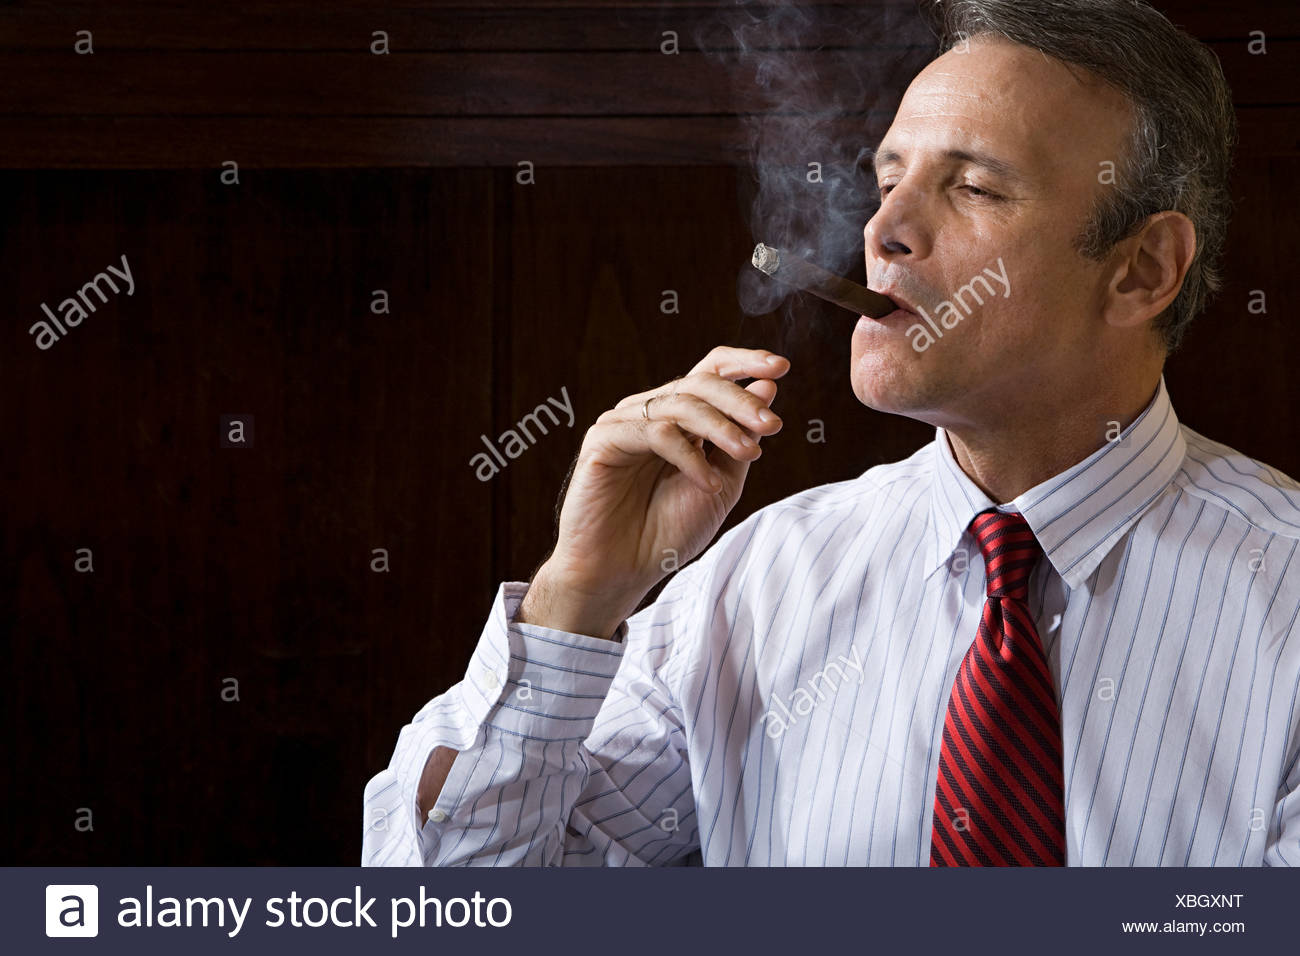 Smoking Cigar Stock Photos & Smoking Cigar Stock Images